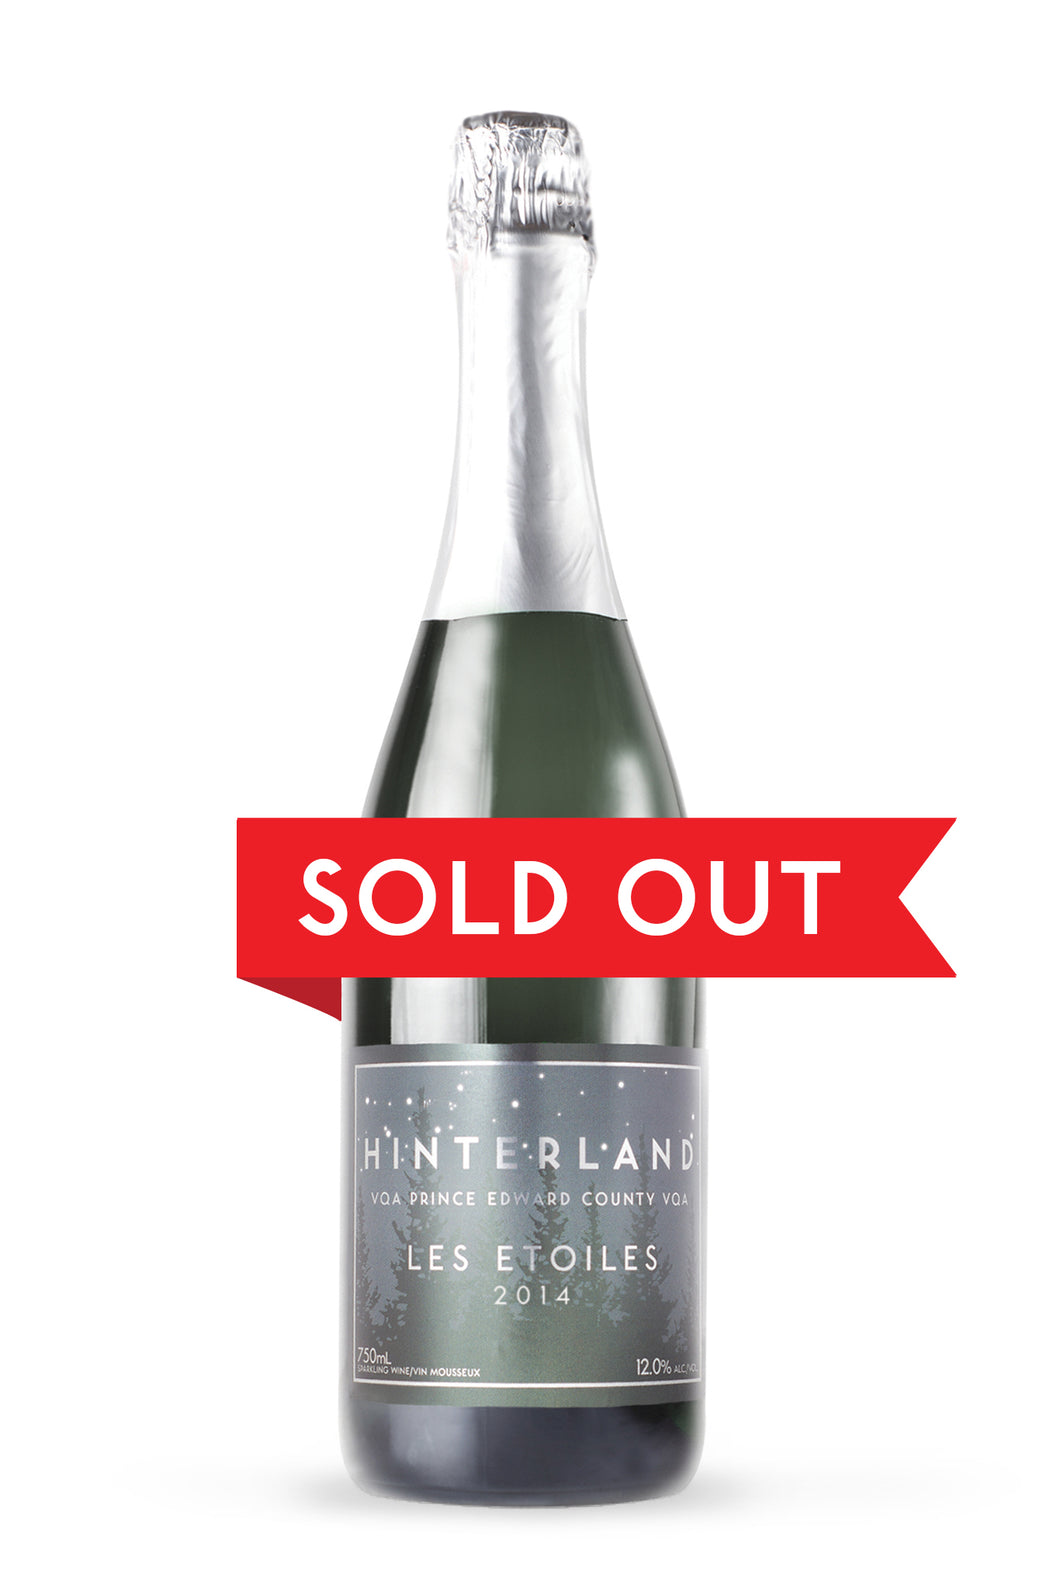 Les Etoiles 2014 Method Traditional — SOLD OUT!